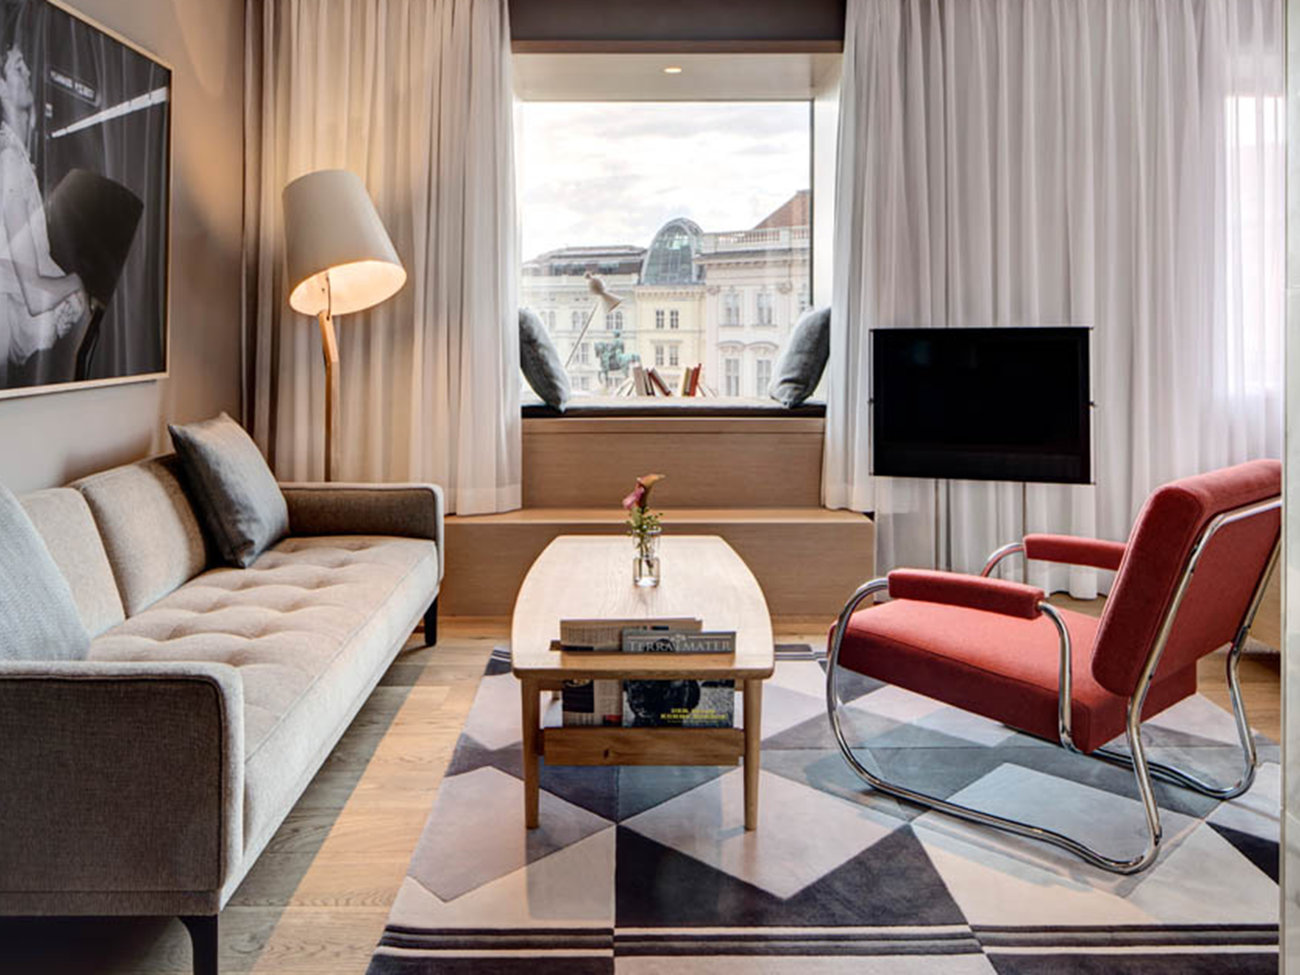 Guest House Hotel in Vienna